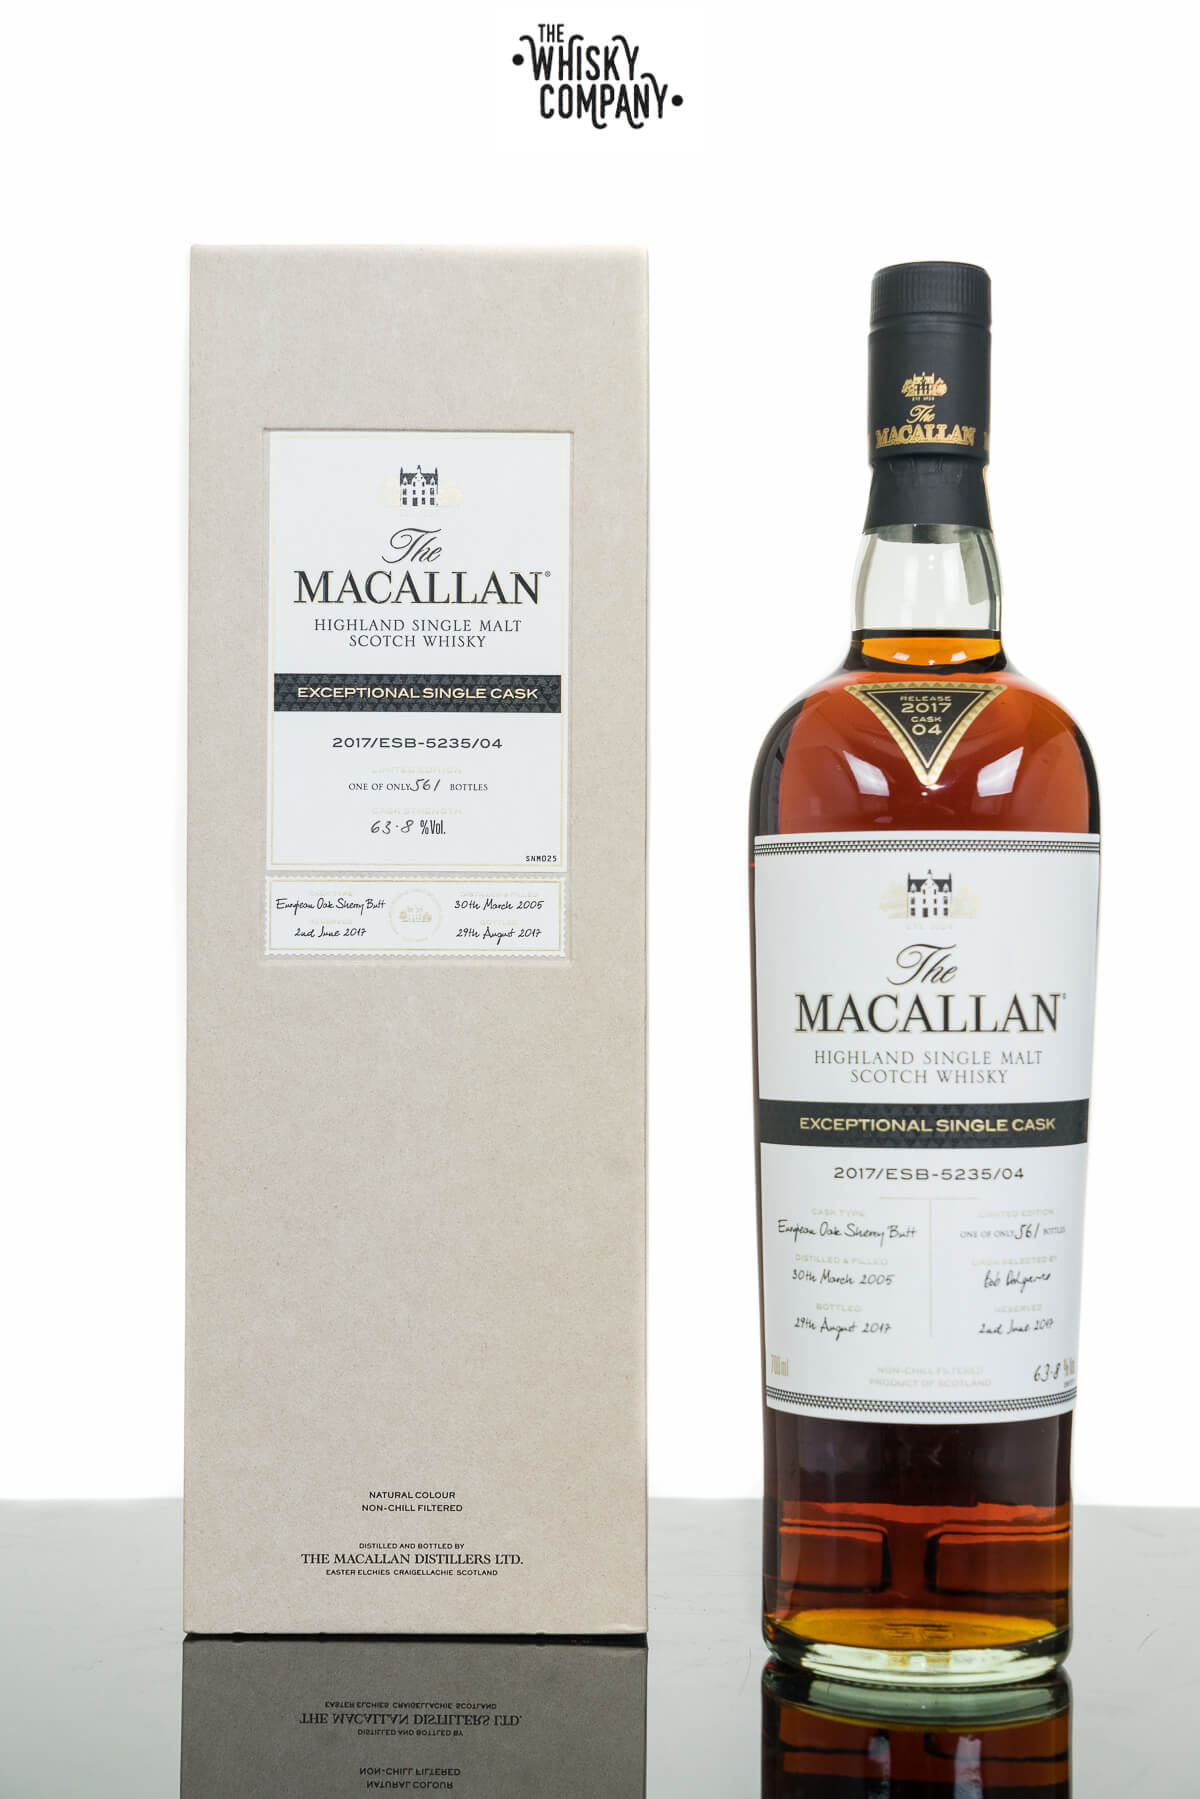 The Macallan Exceptional Single Cask 2017/ESB-5235/04 Single Malt Scotch Whisky (700ml)